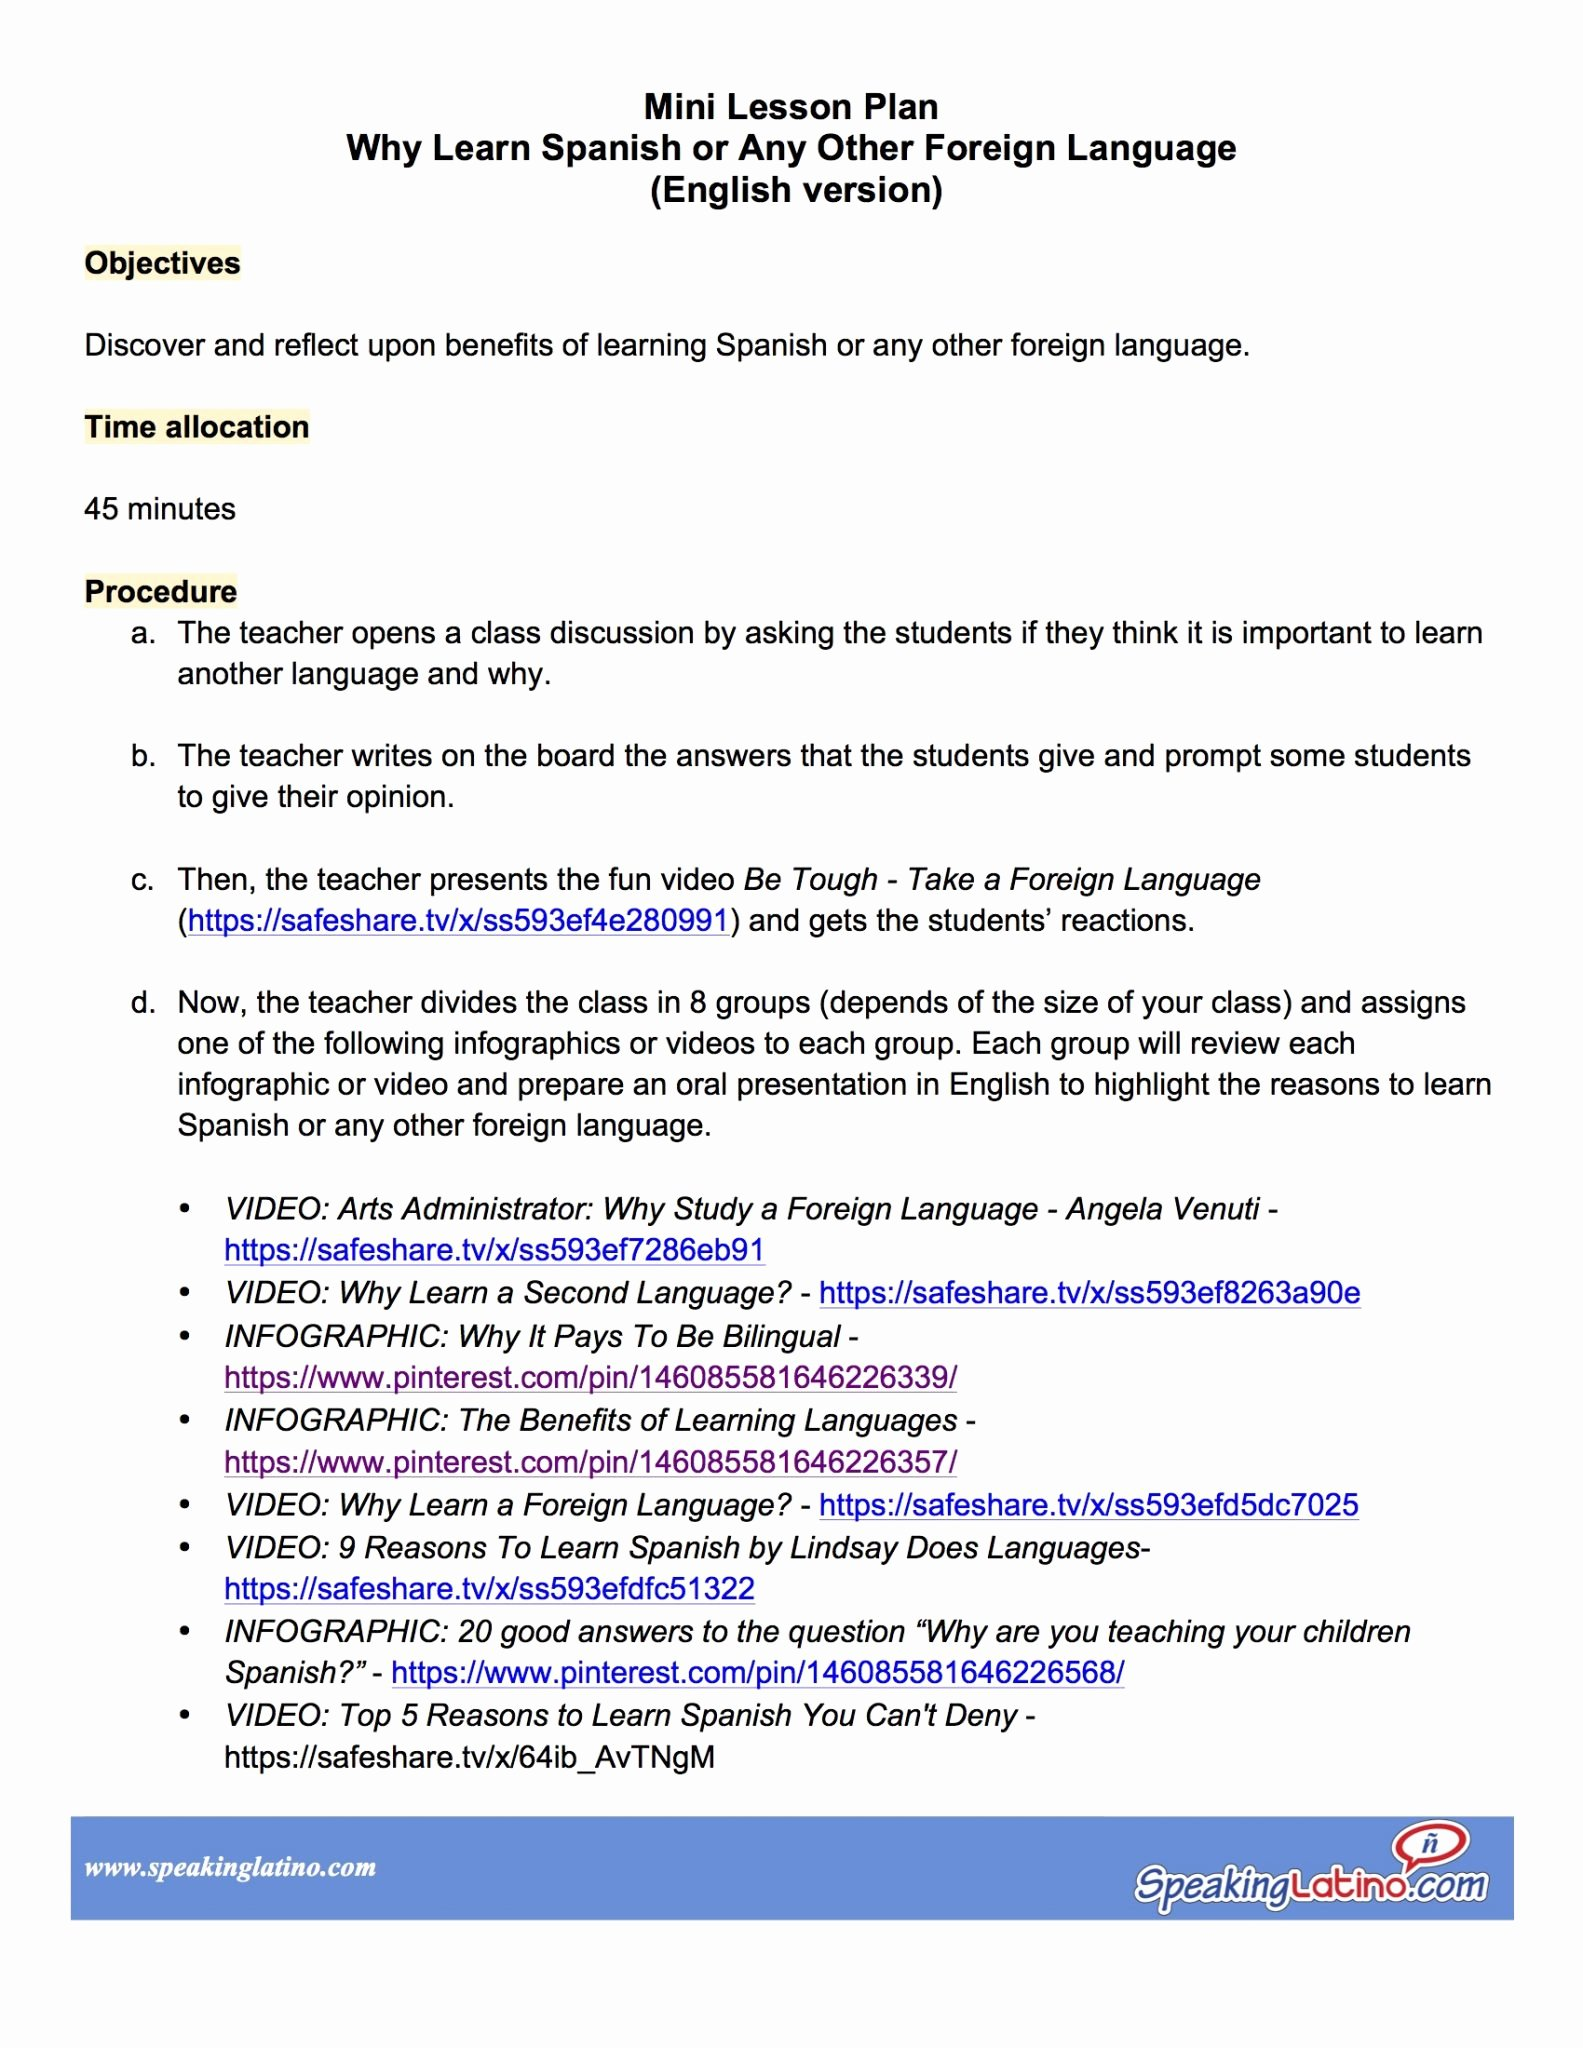 Mini Lesson Plan Template Lovely 1 Teacher Preliminary Funnel Tw Preliminary Lessons $3 Email Landing Page